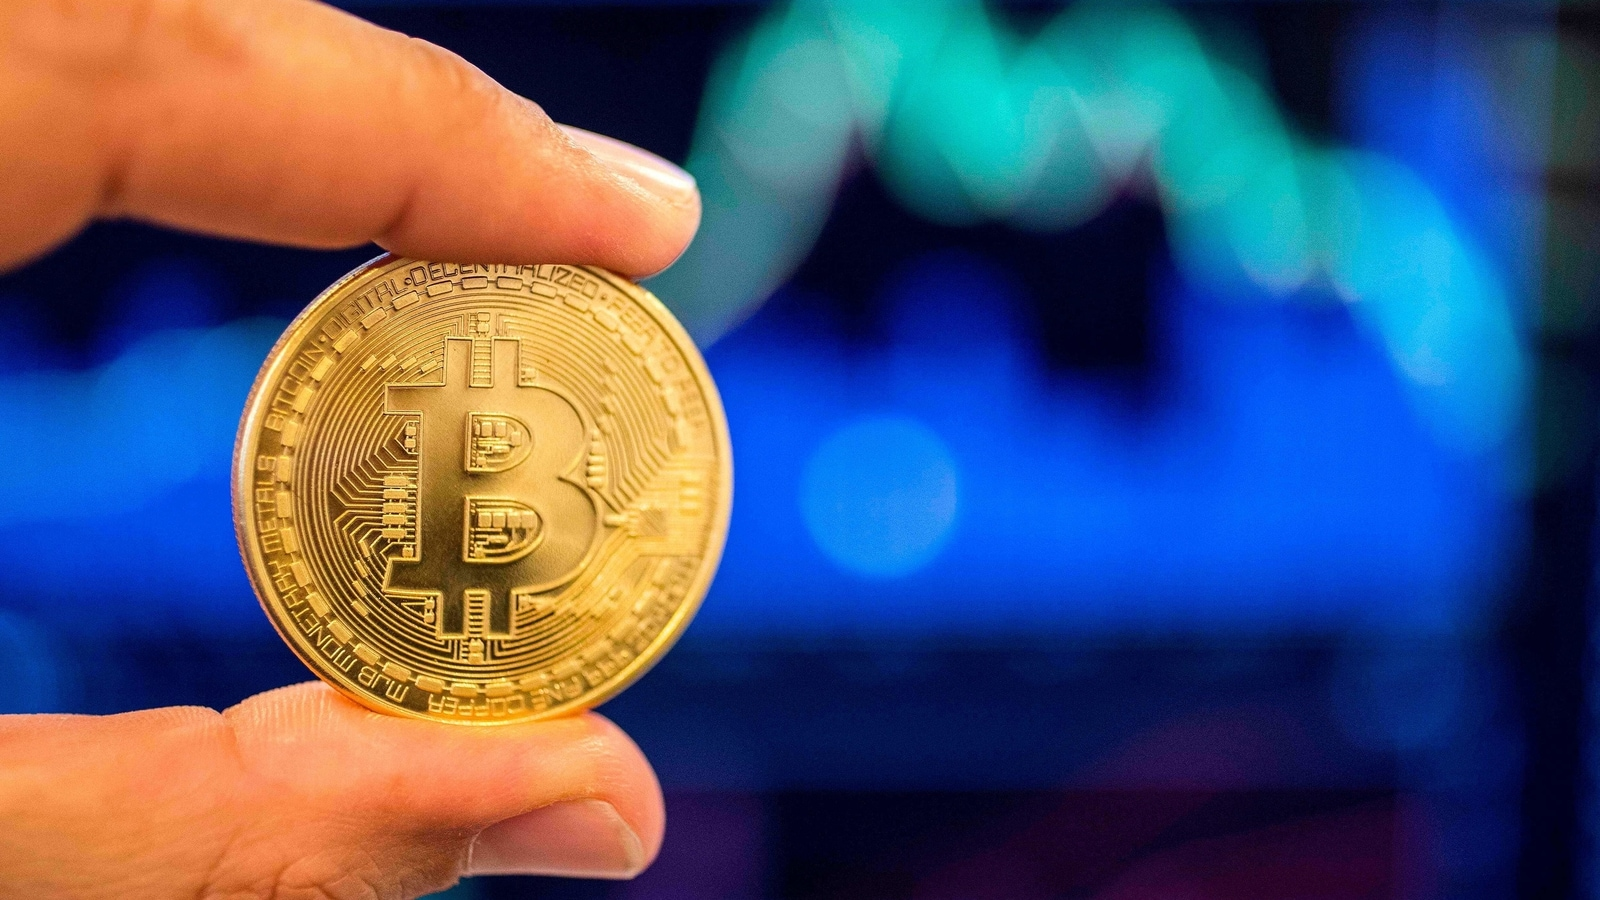 Internet and Mobile Association urges govt to regulate, not ban cryptocurrency